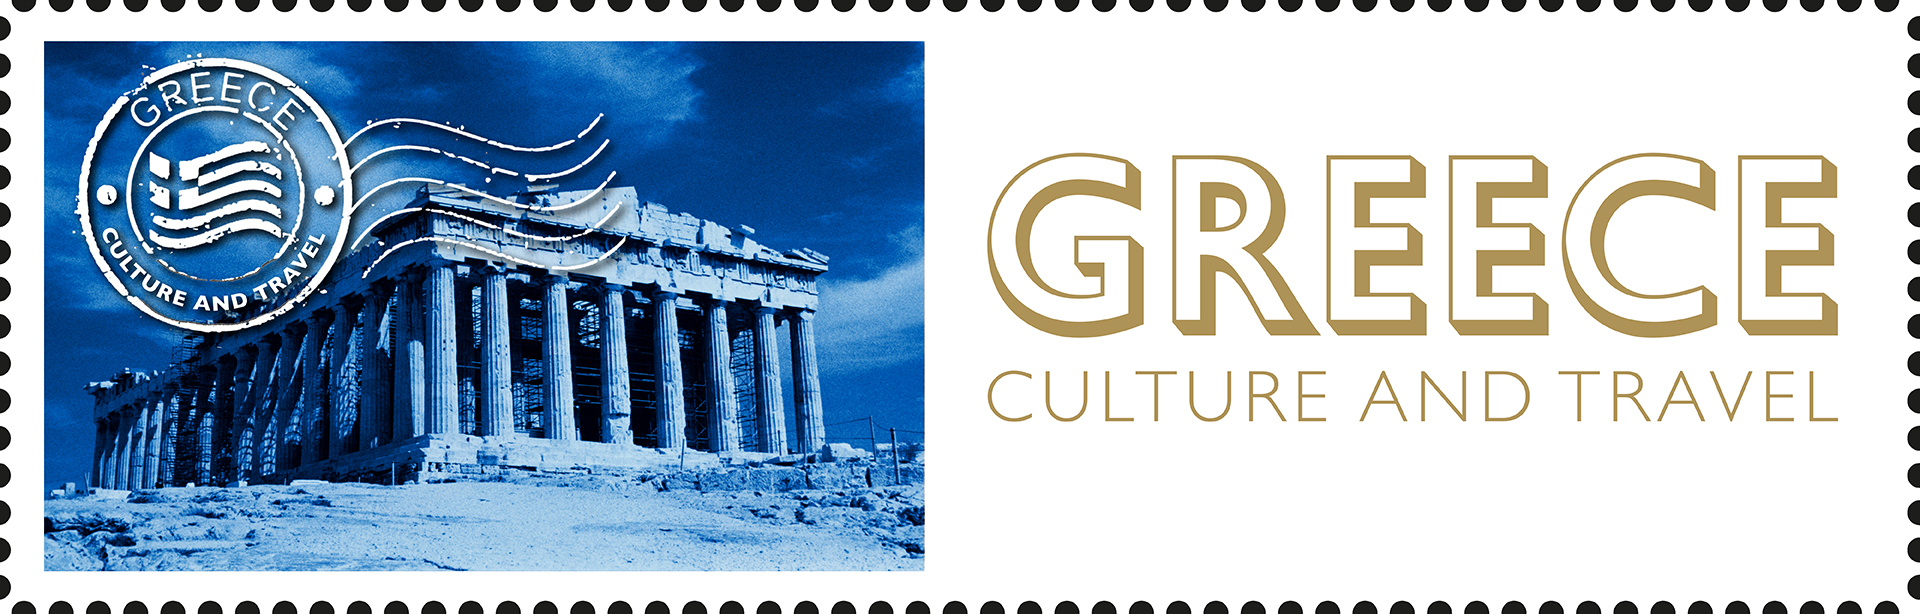 Greece - Culture and Travel